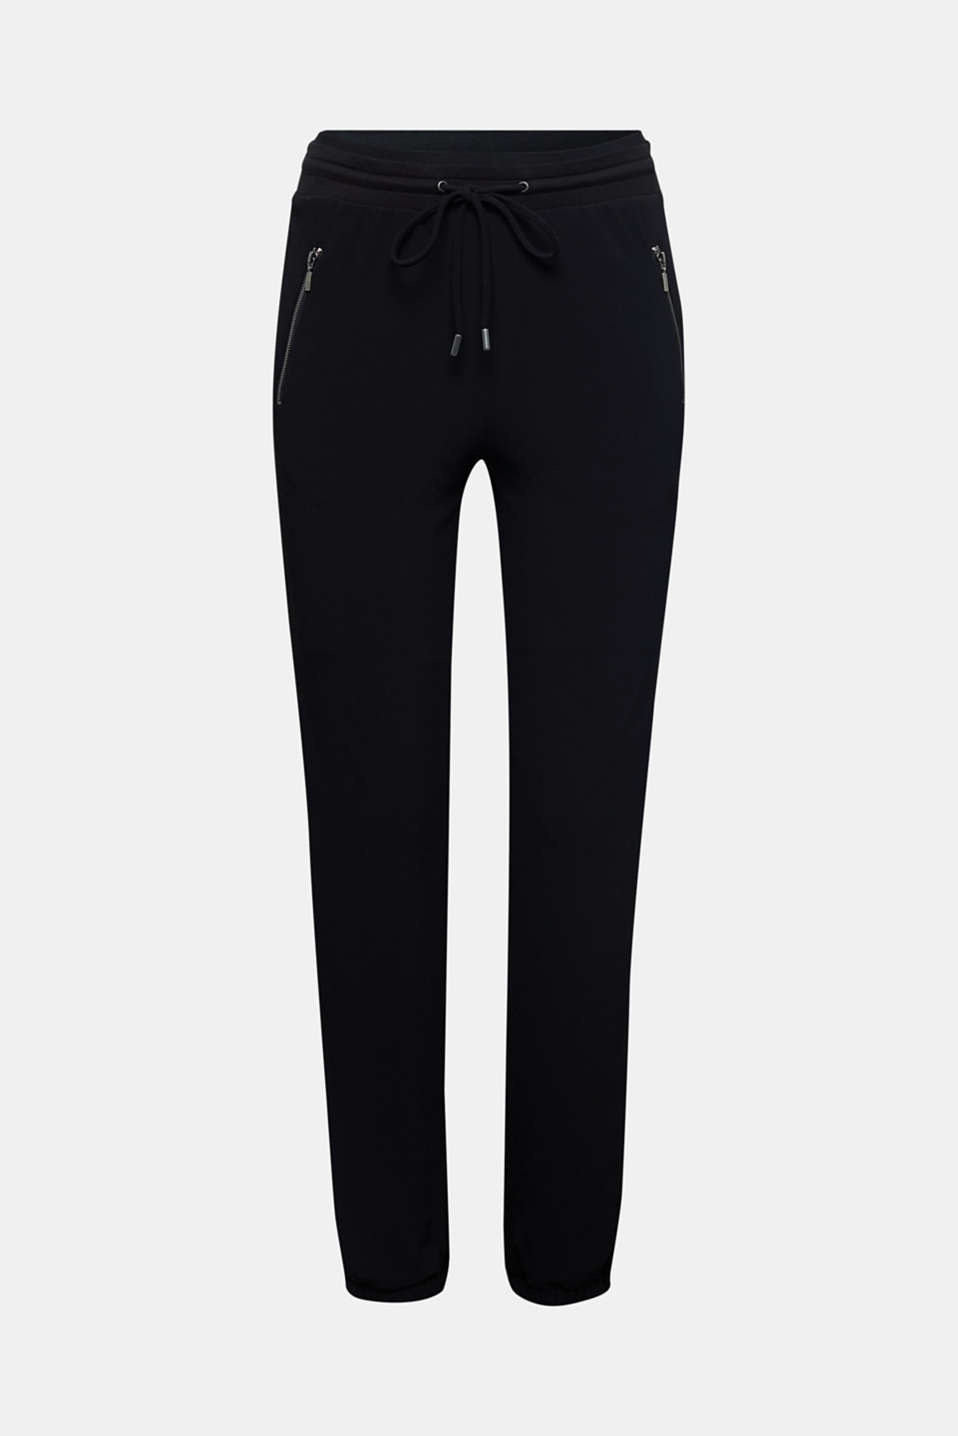 Crêpe trousers in a tracksuit bottom style, BLACK, detail image number 5